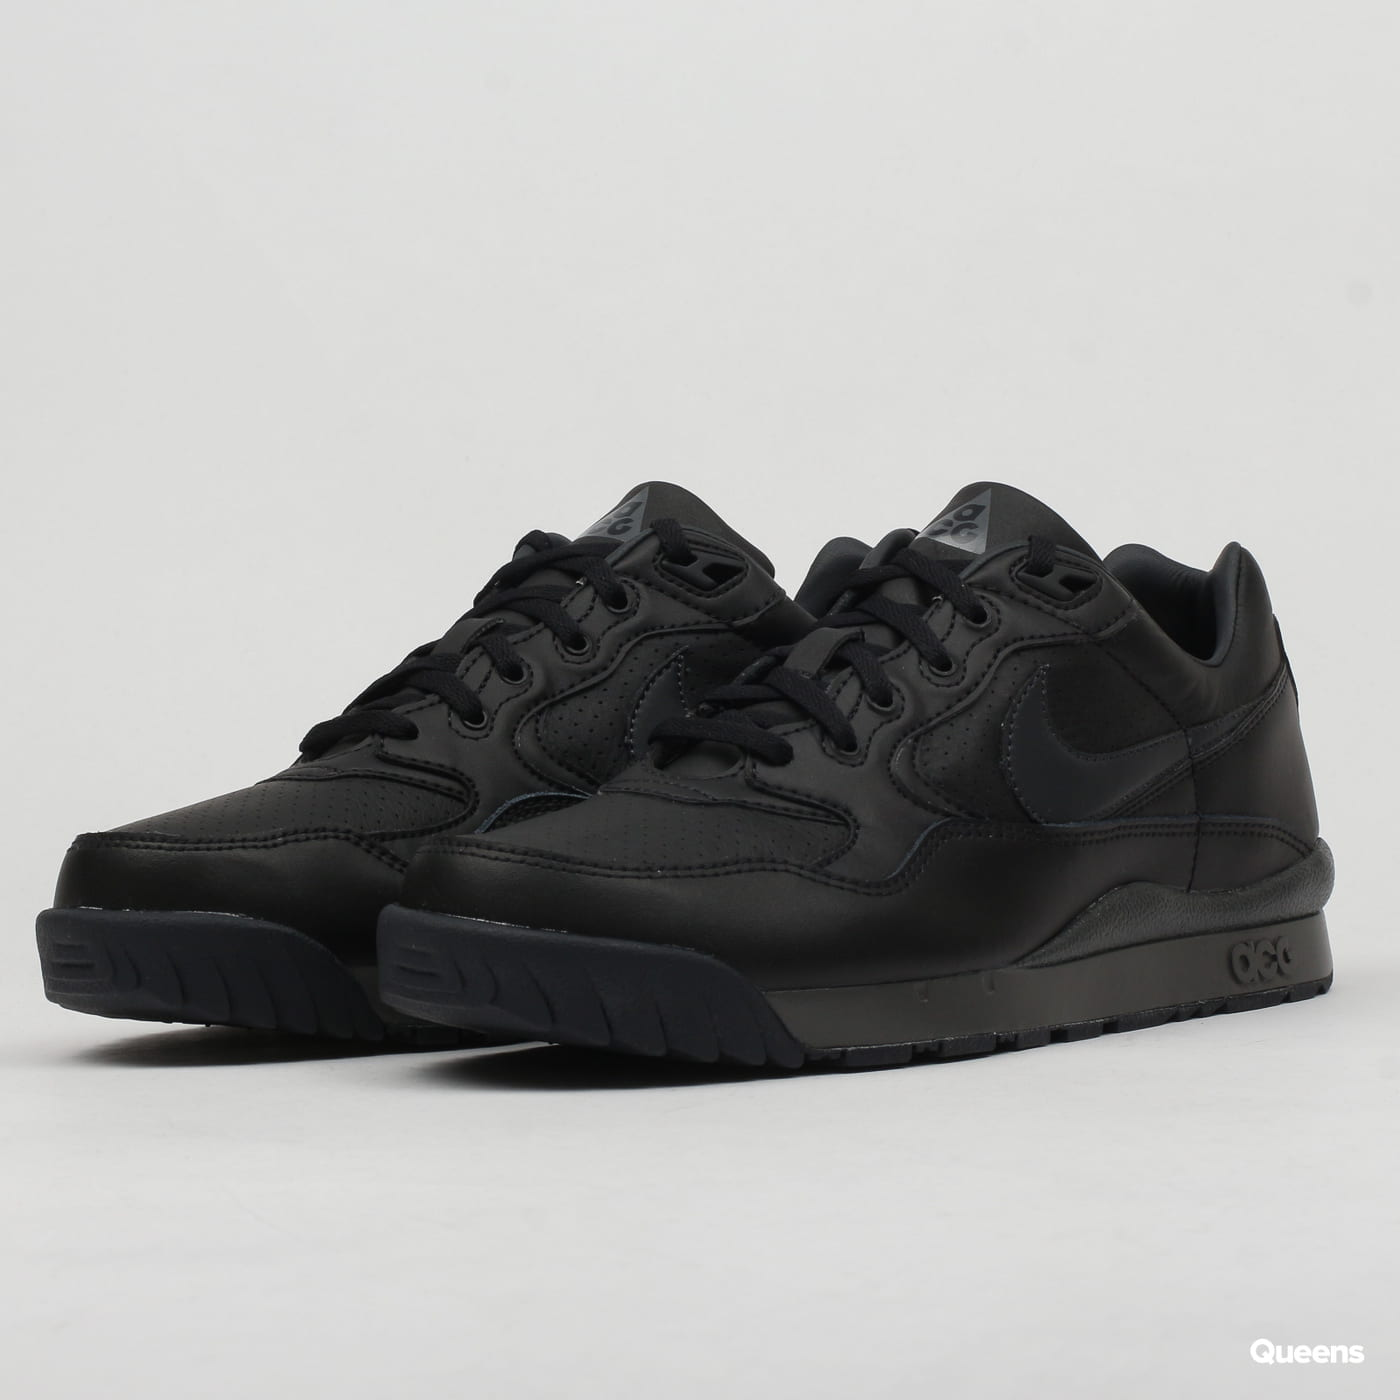 ruptura Algebraico alto  Sneakers Nike Air Wildwood ACG black / anthracite - dark grey (AO3116-003)  – Queens 💚